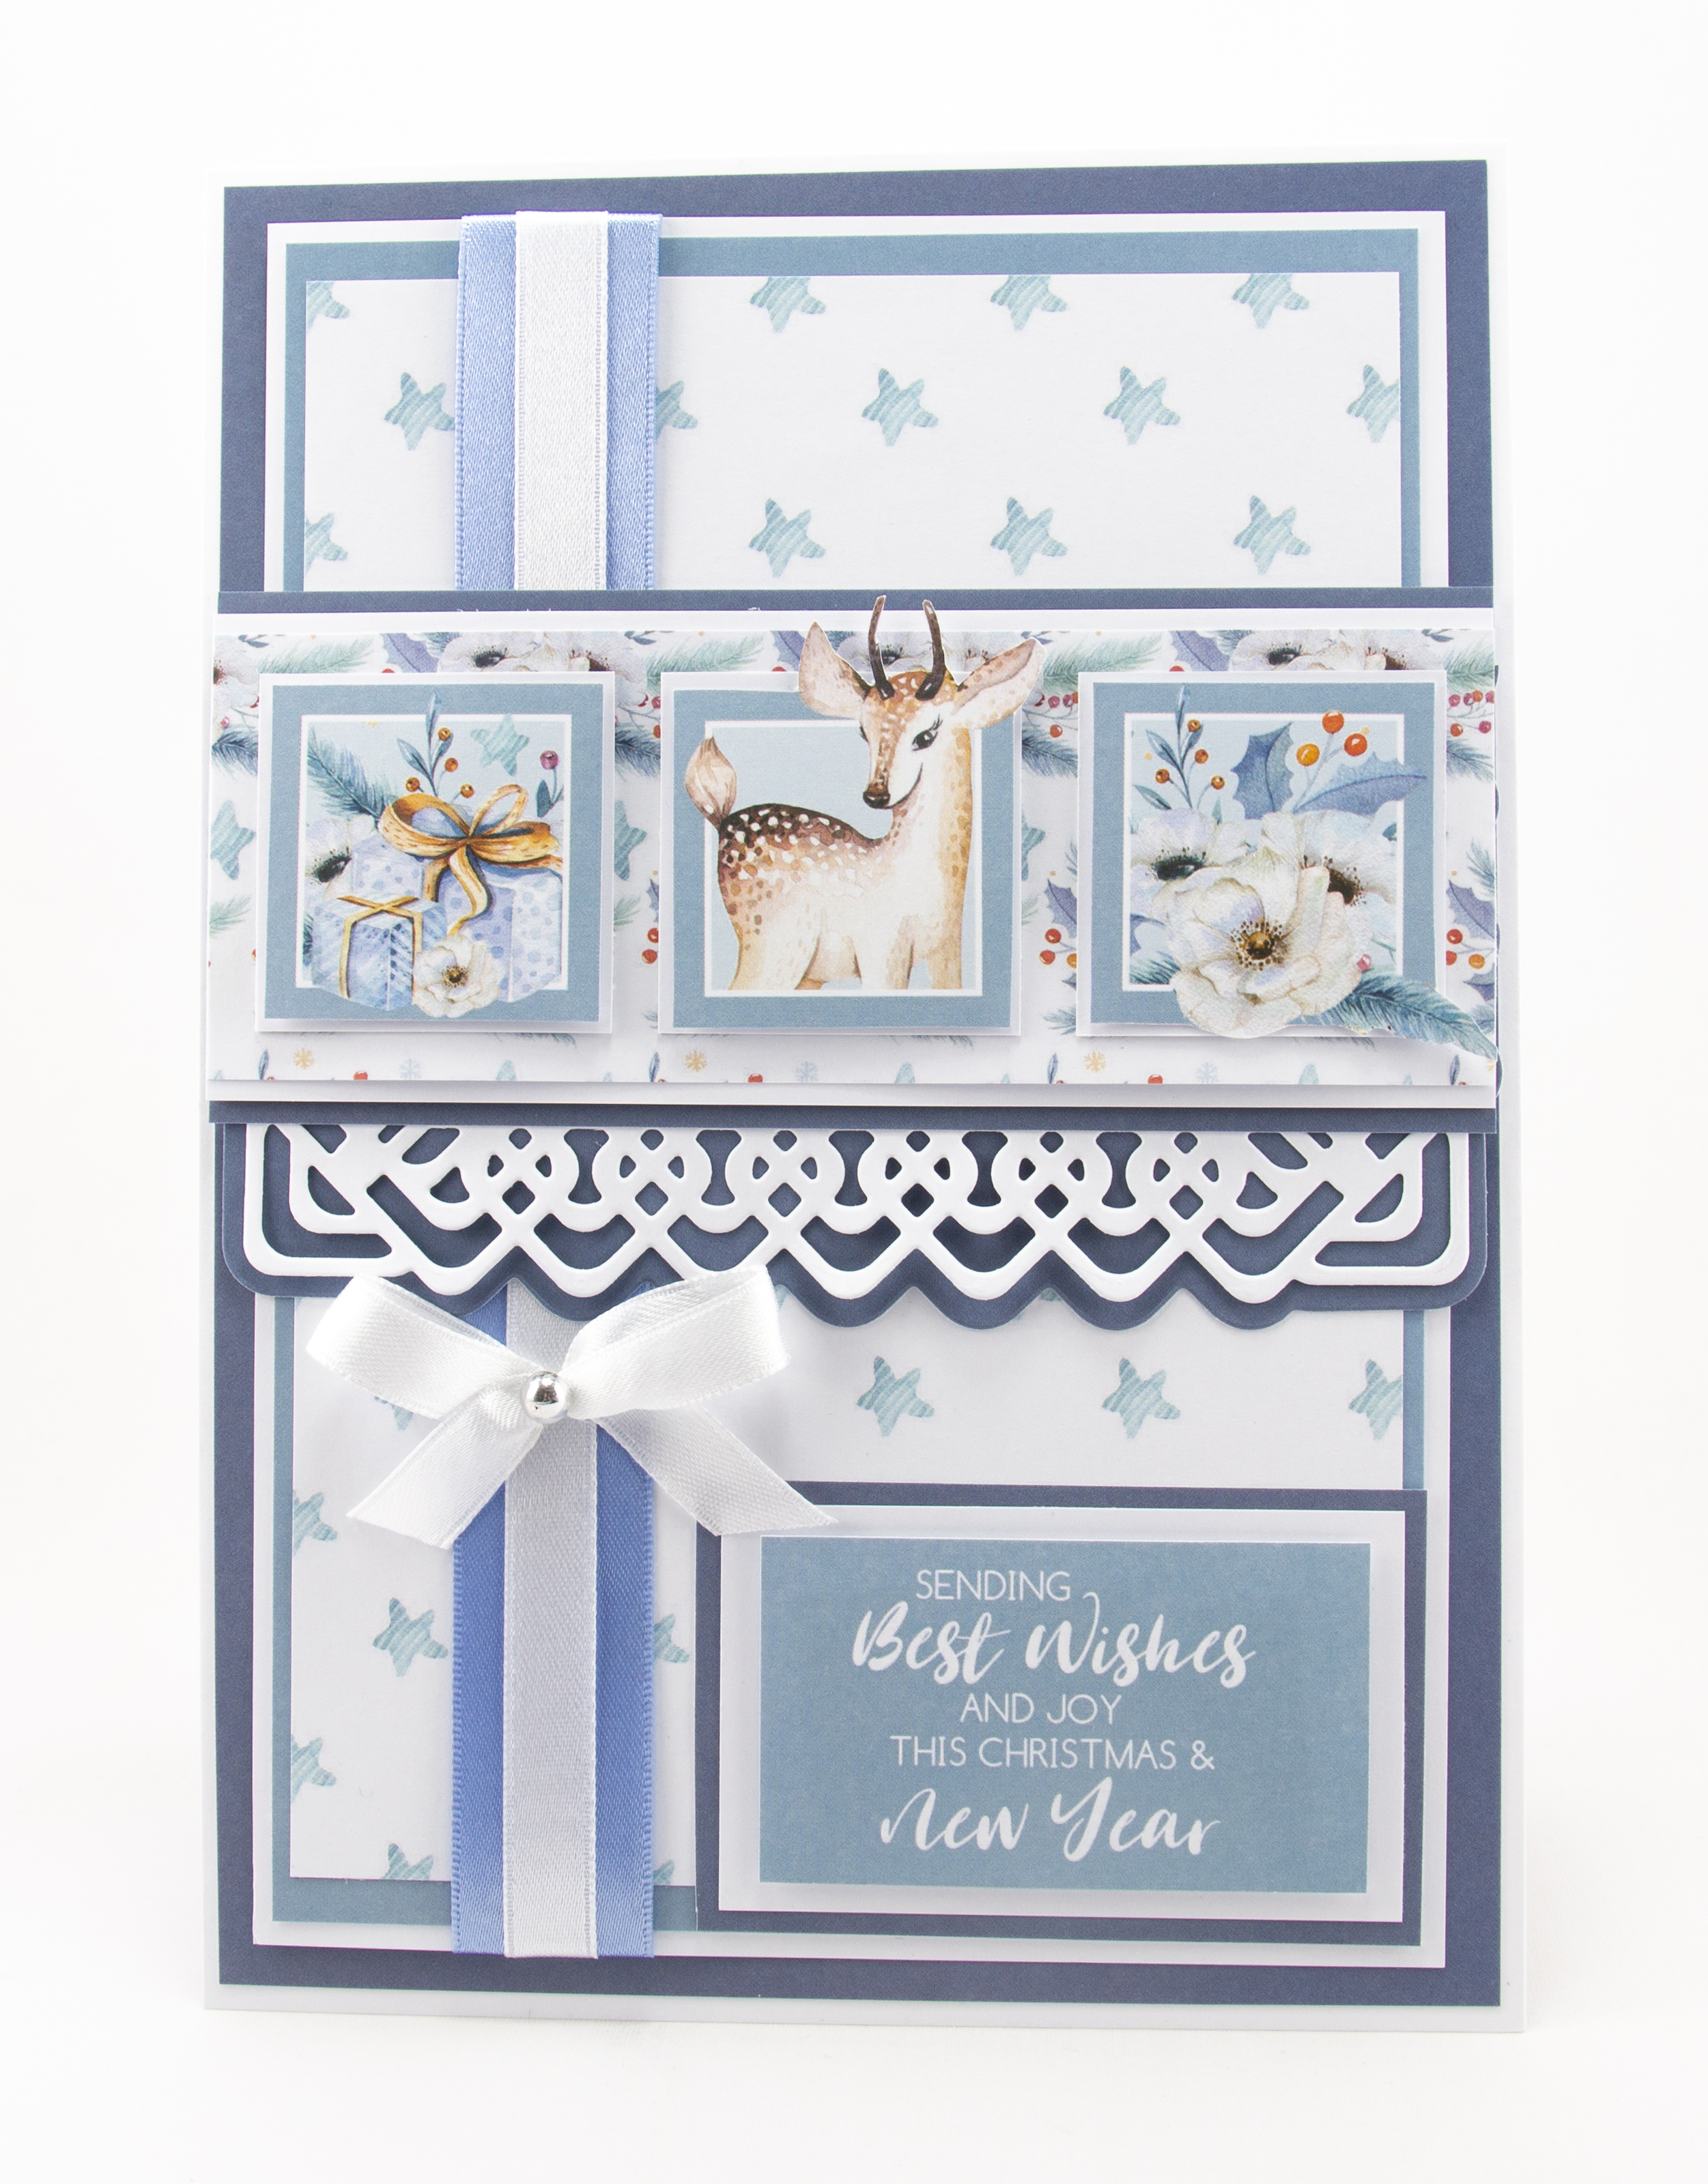 A Christmas card with a star backing paper, a deer image, presents and Christmas Roses